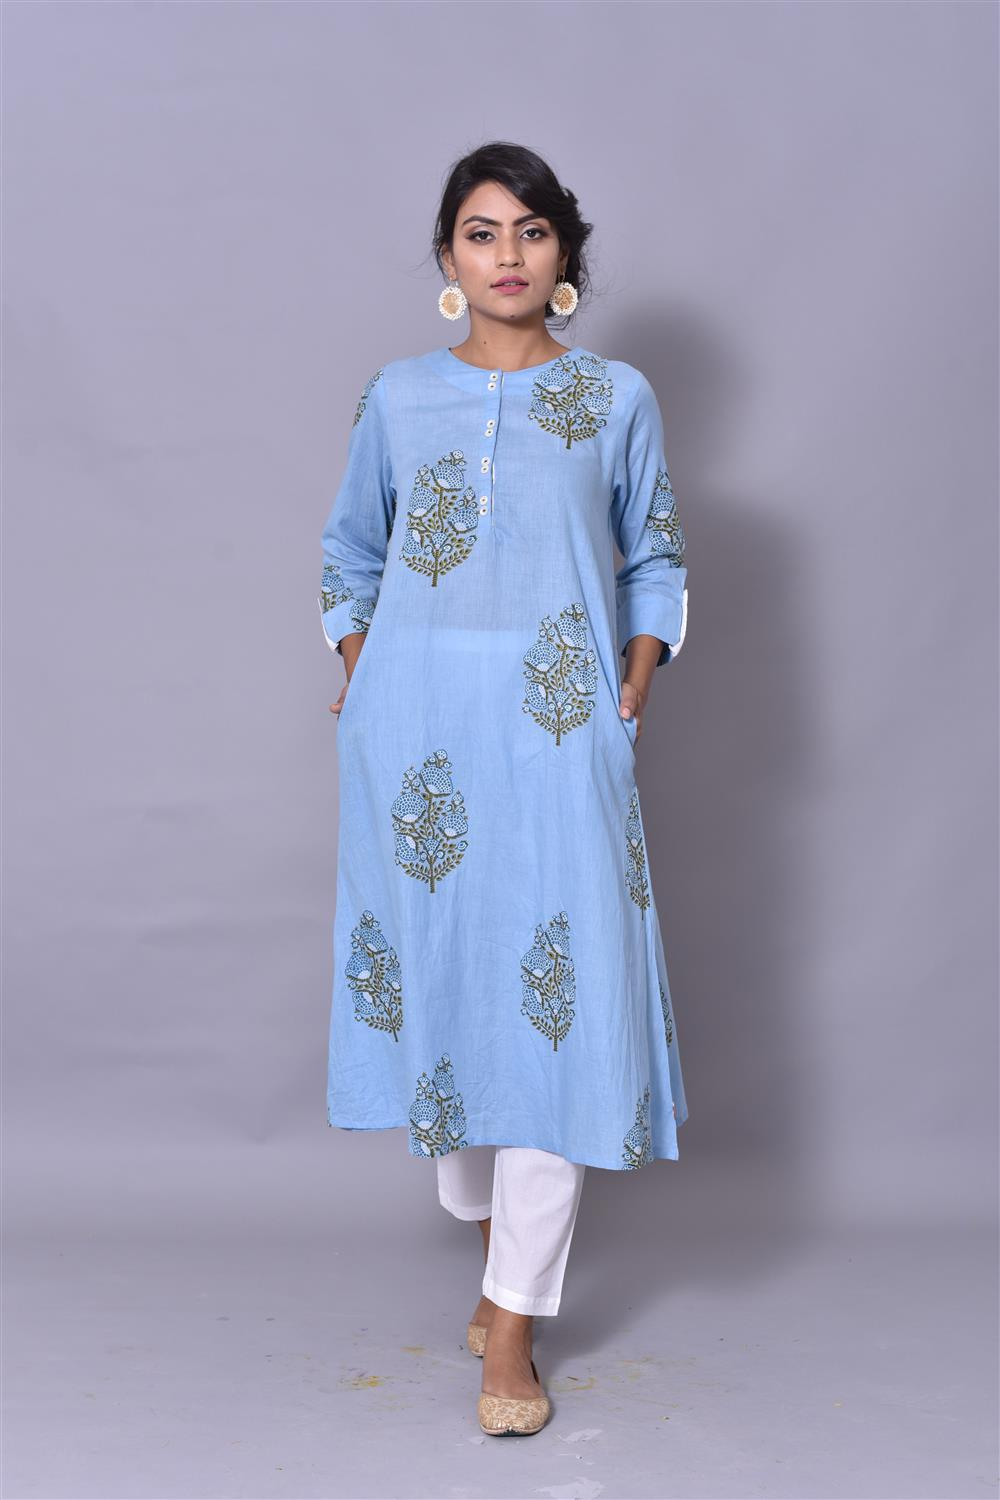 POWDER BLUE A-LINE KURTA